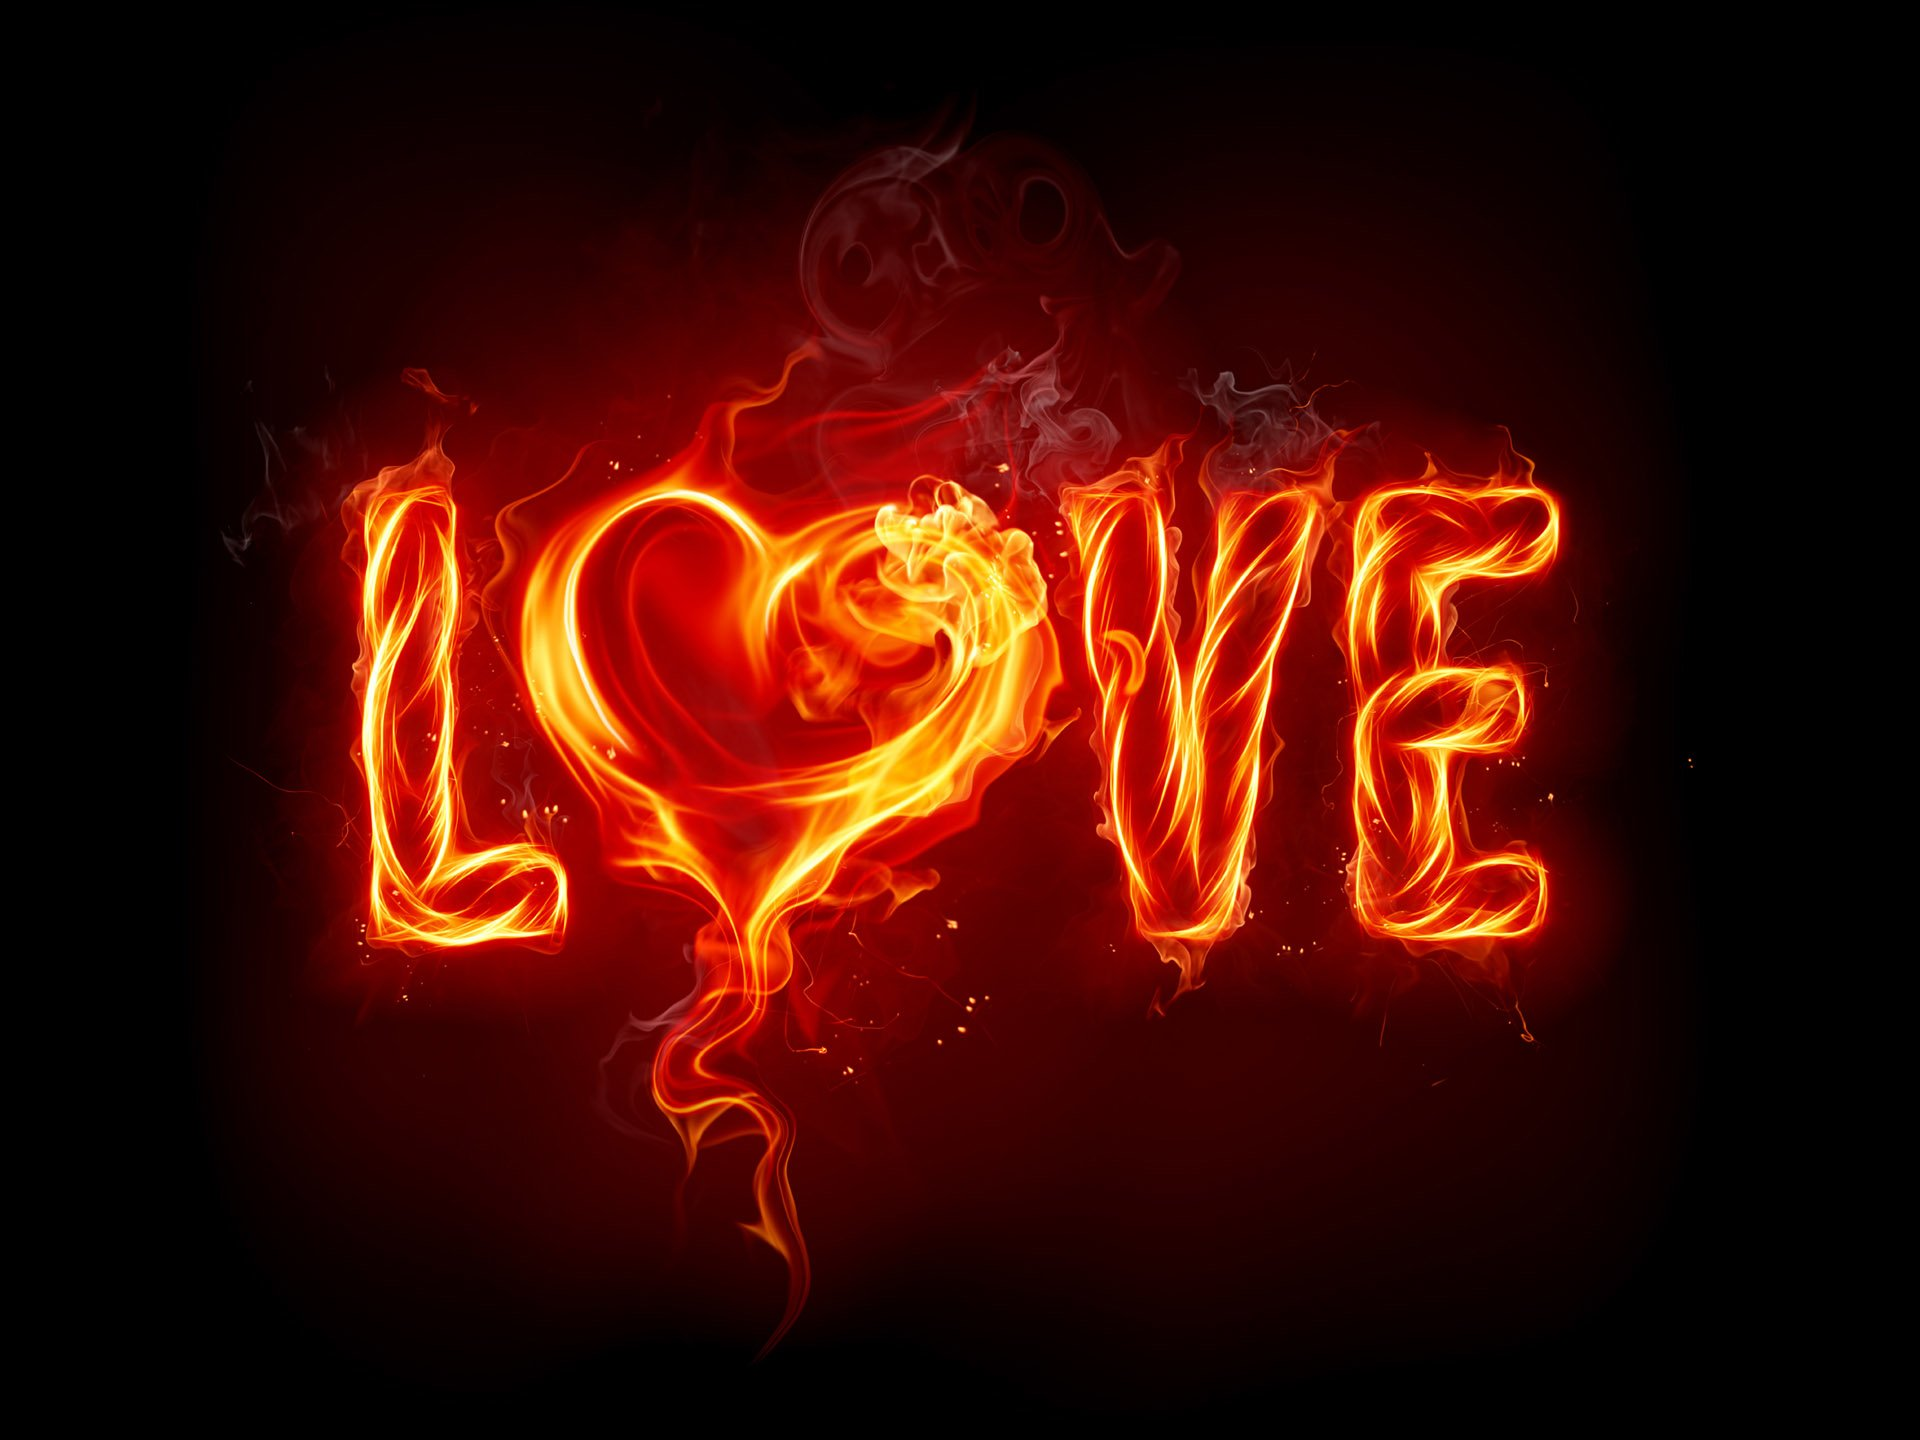 Love Hd wallpaper for download